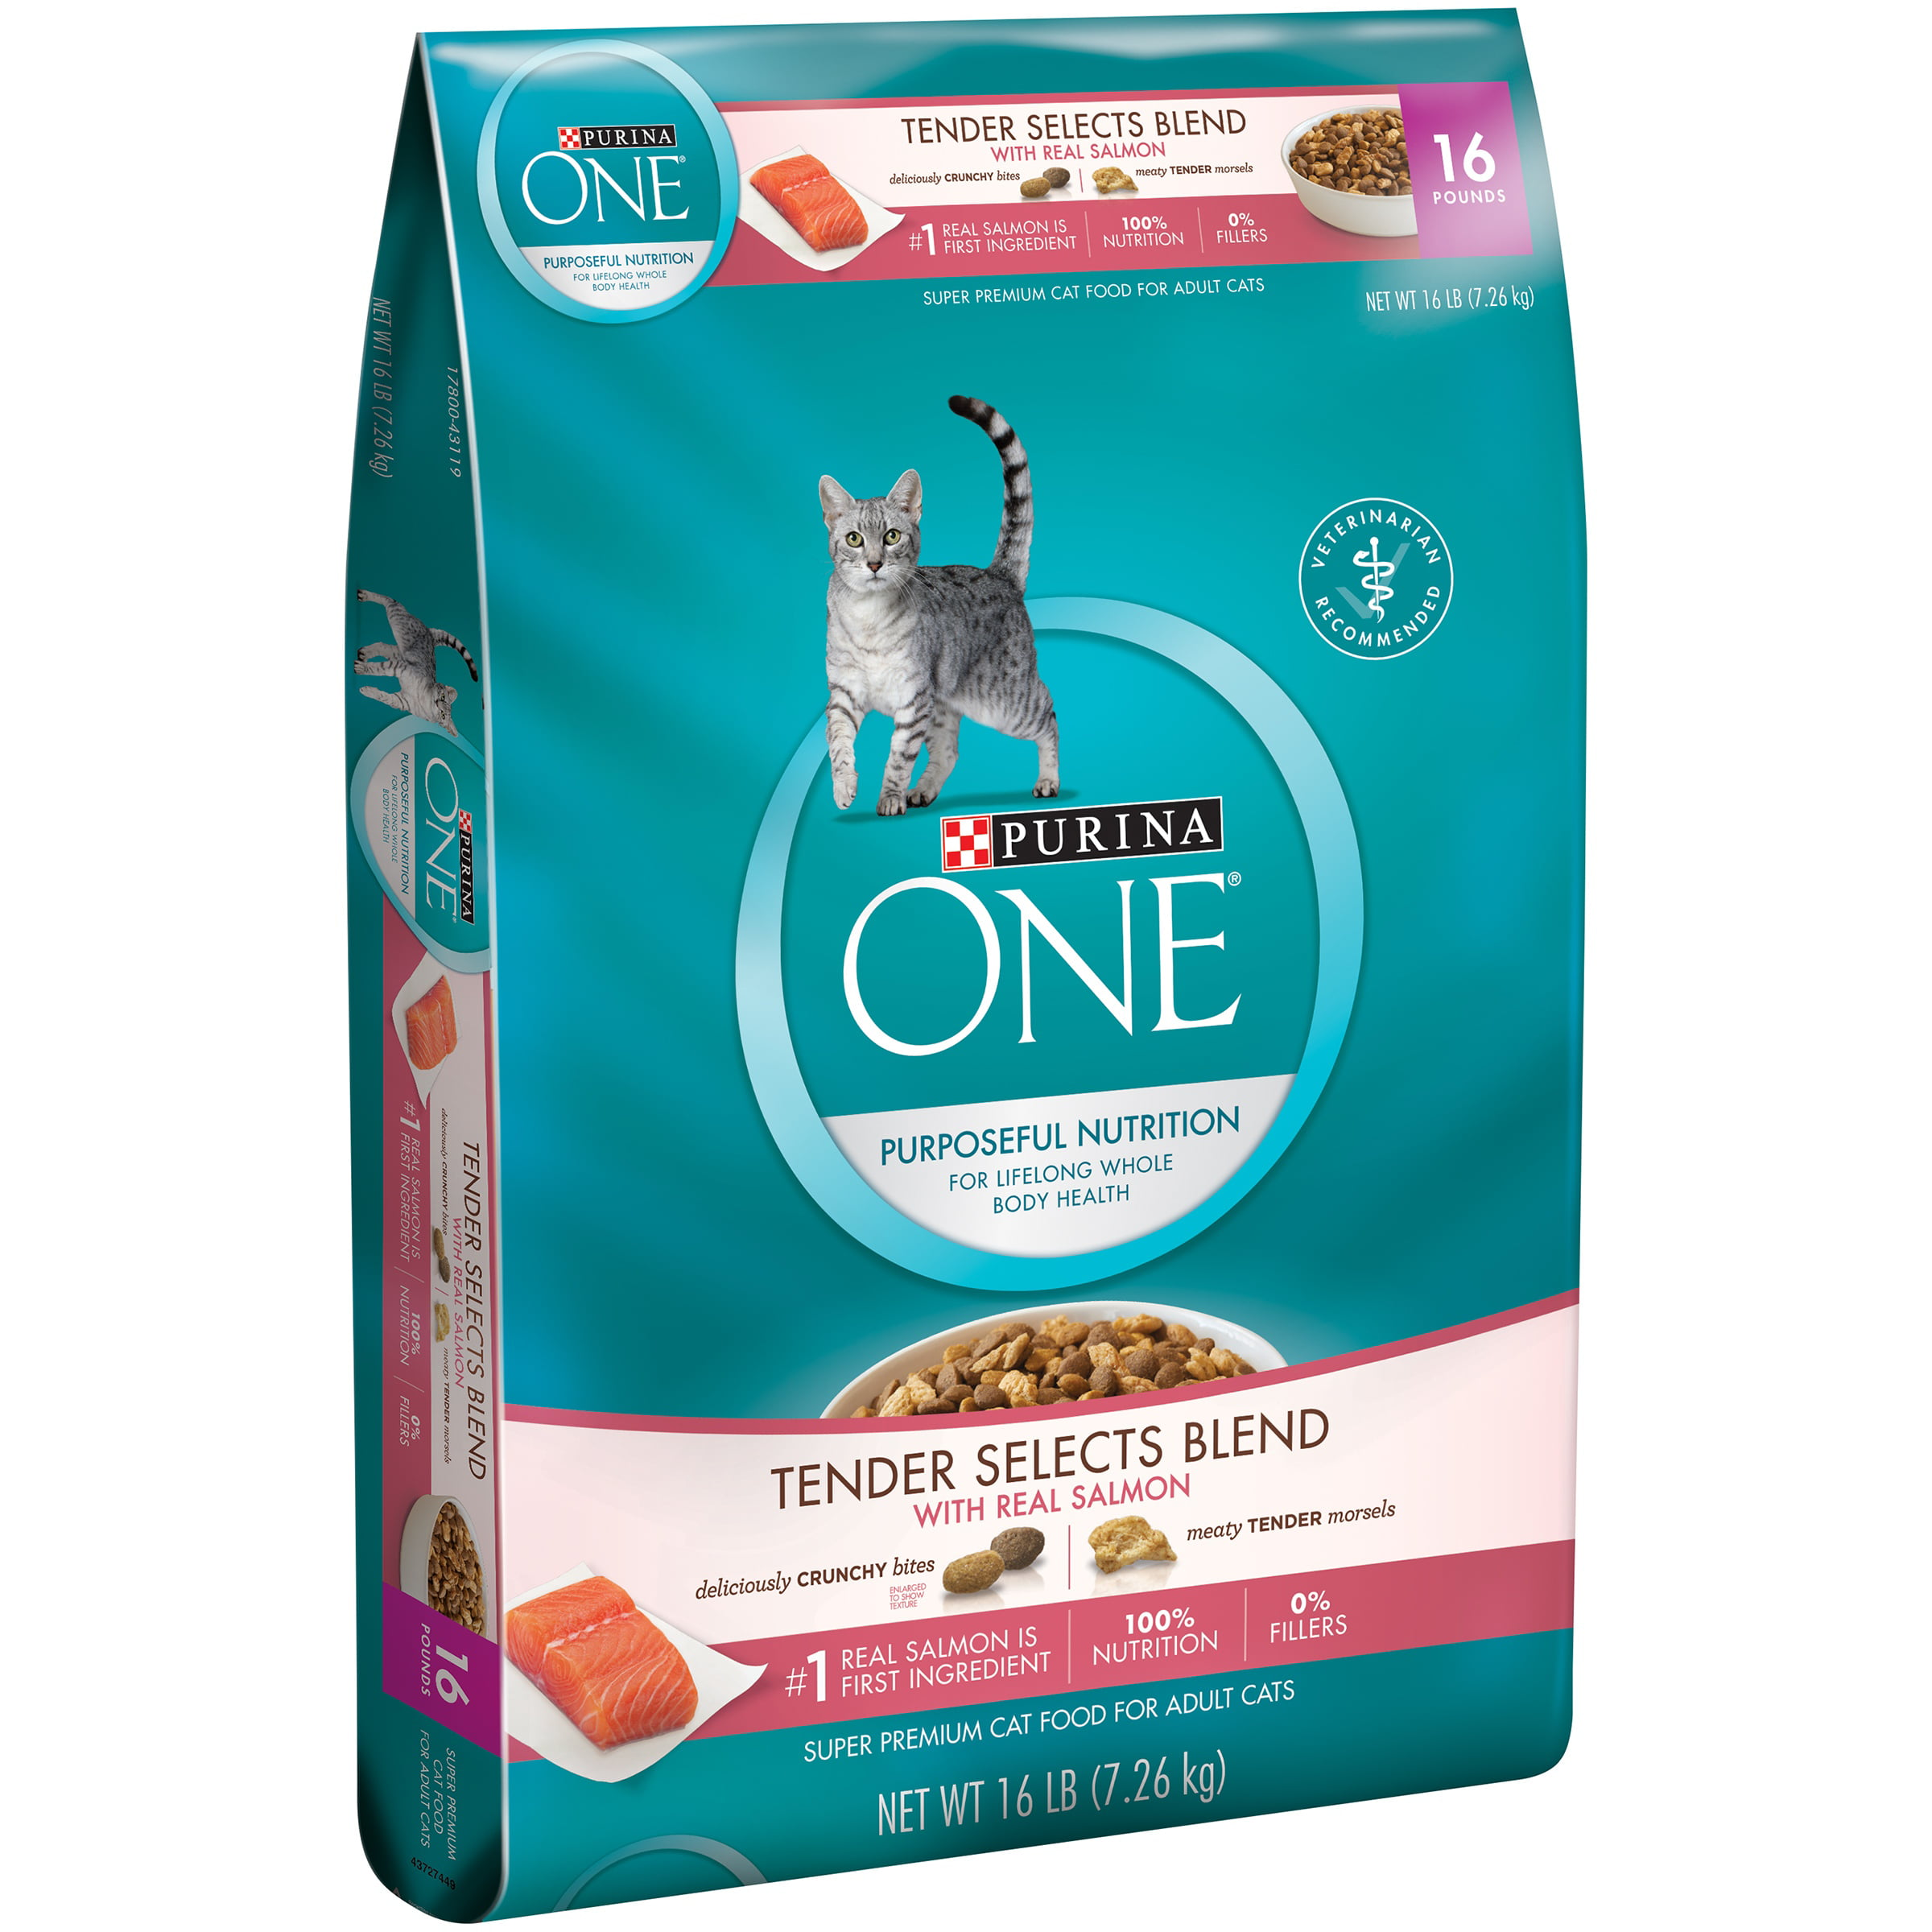 Purina ONE Tender Selects Blend with Real Salmon Cat Food 16 lb. Bag